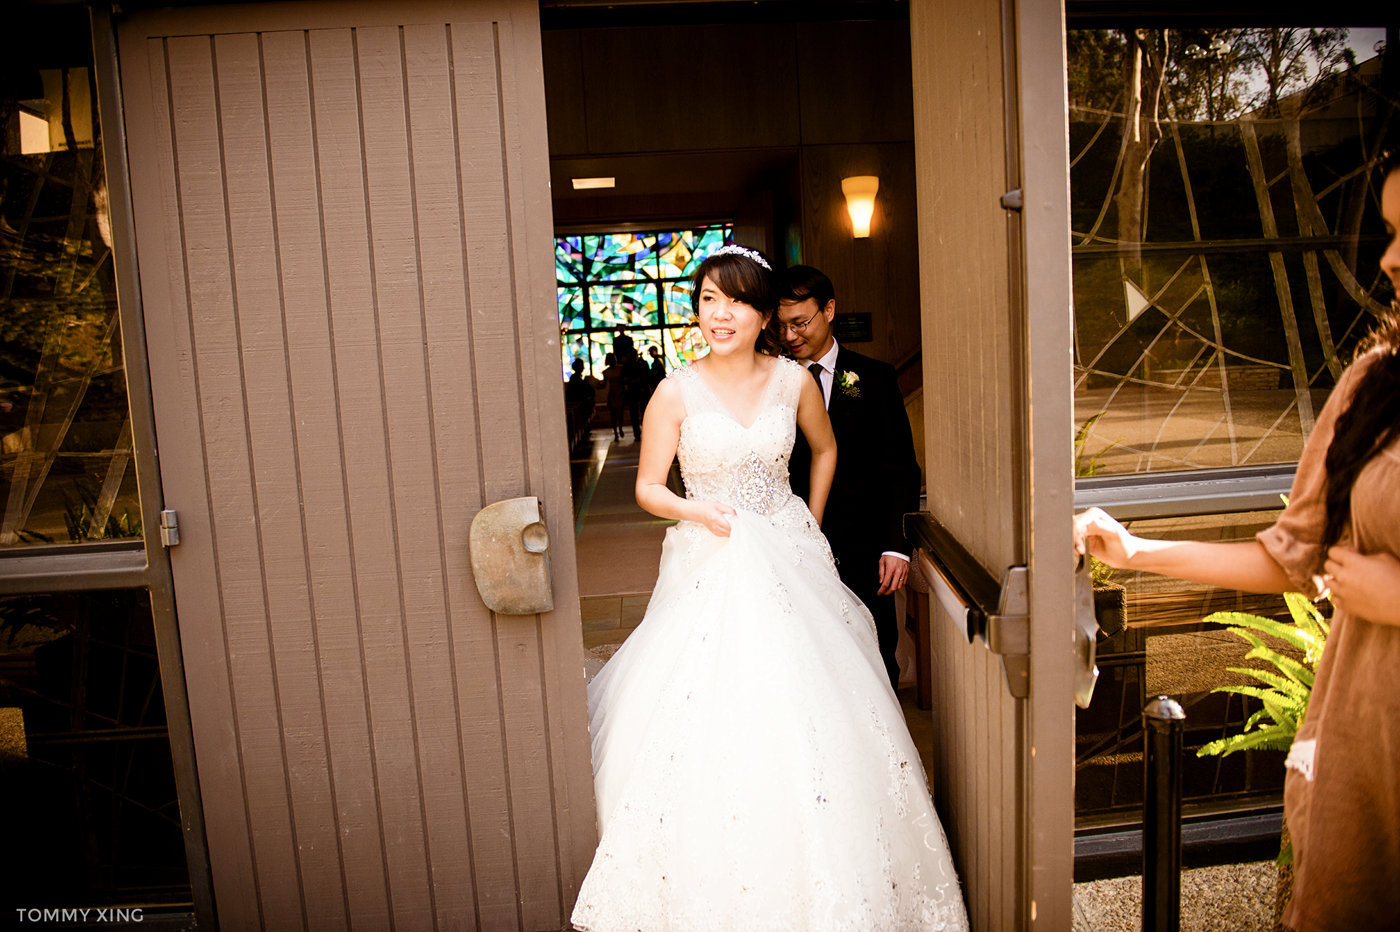 Qinglu Meng & Daozheng Chen Wedding Slideshow-168-E.JPG